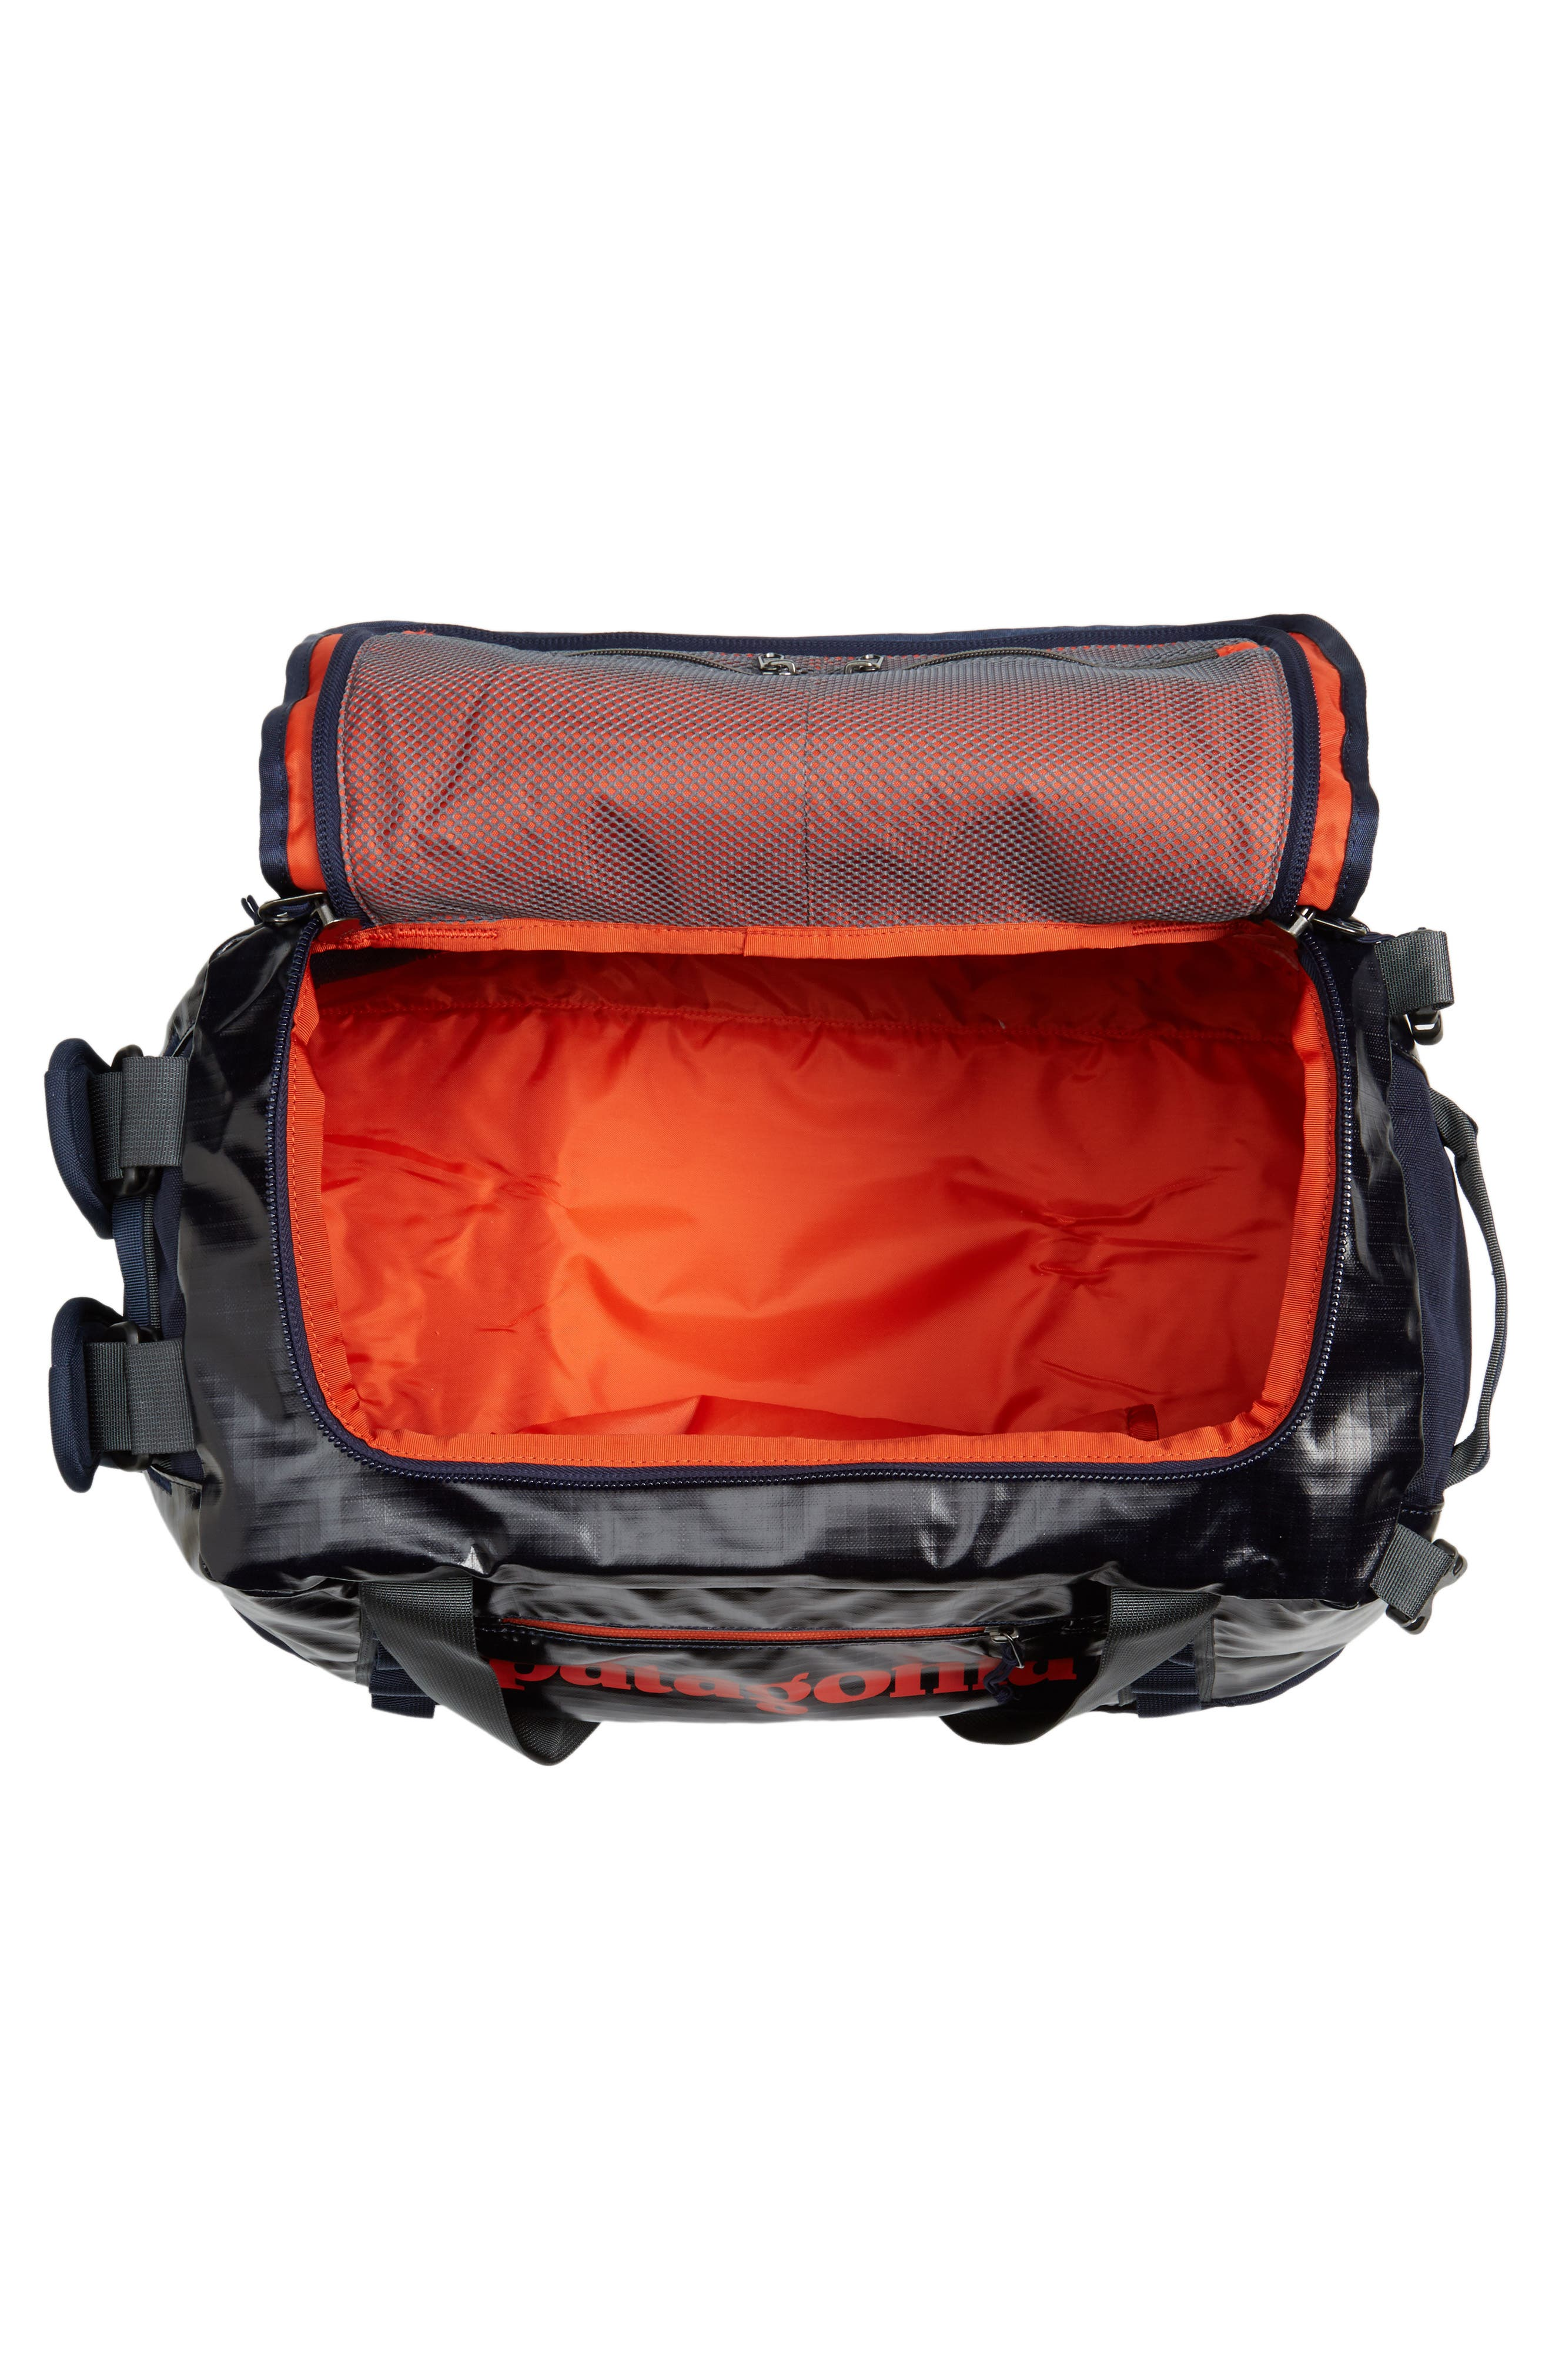 Black Hole Water Repellent Duffel Bag,                             Alternate thumbnail 3, color,                             Navy Blue W/ Paintbrush Red